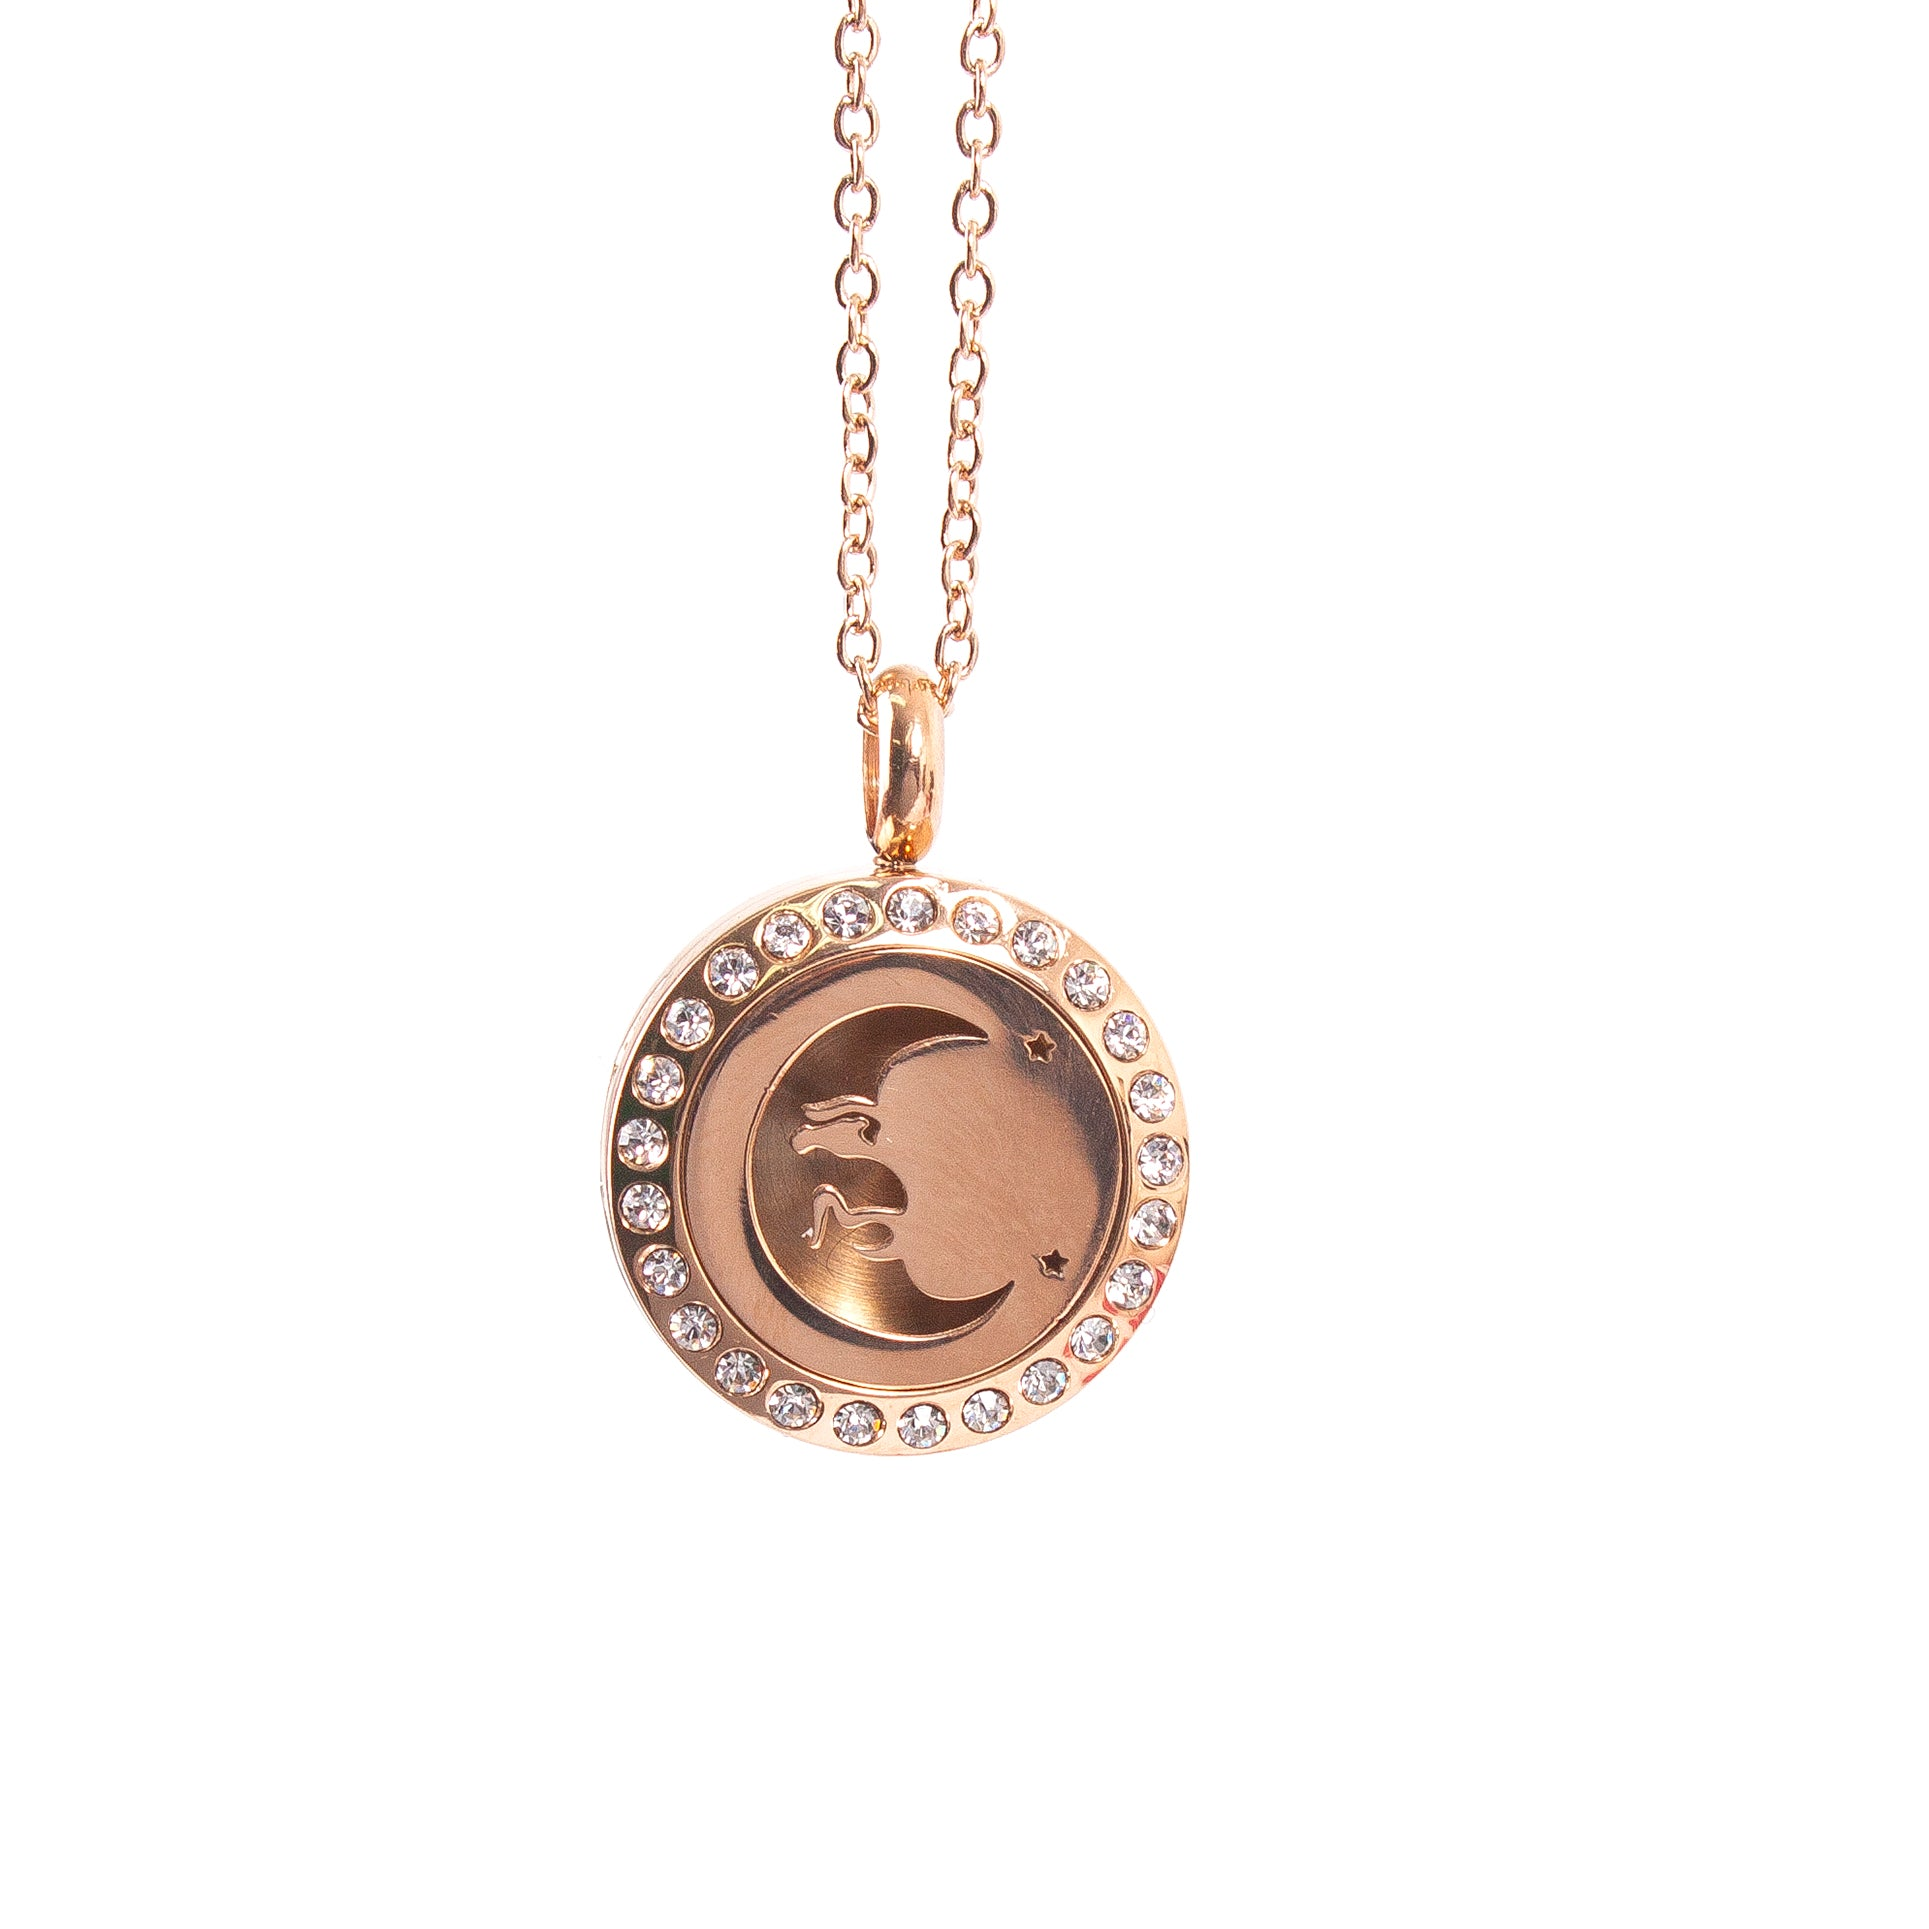 Mystical Moon | Aromatherapy Oil Diffuser Necklace Locket with Pad